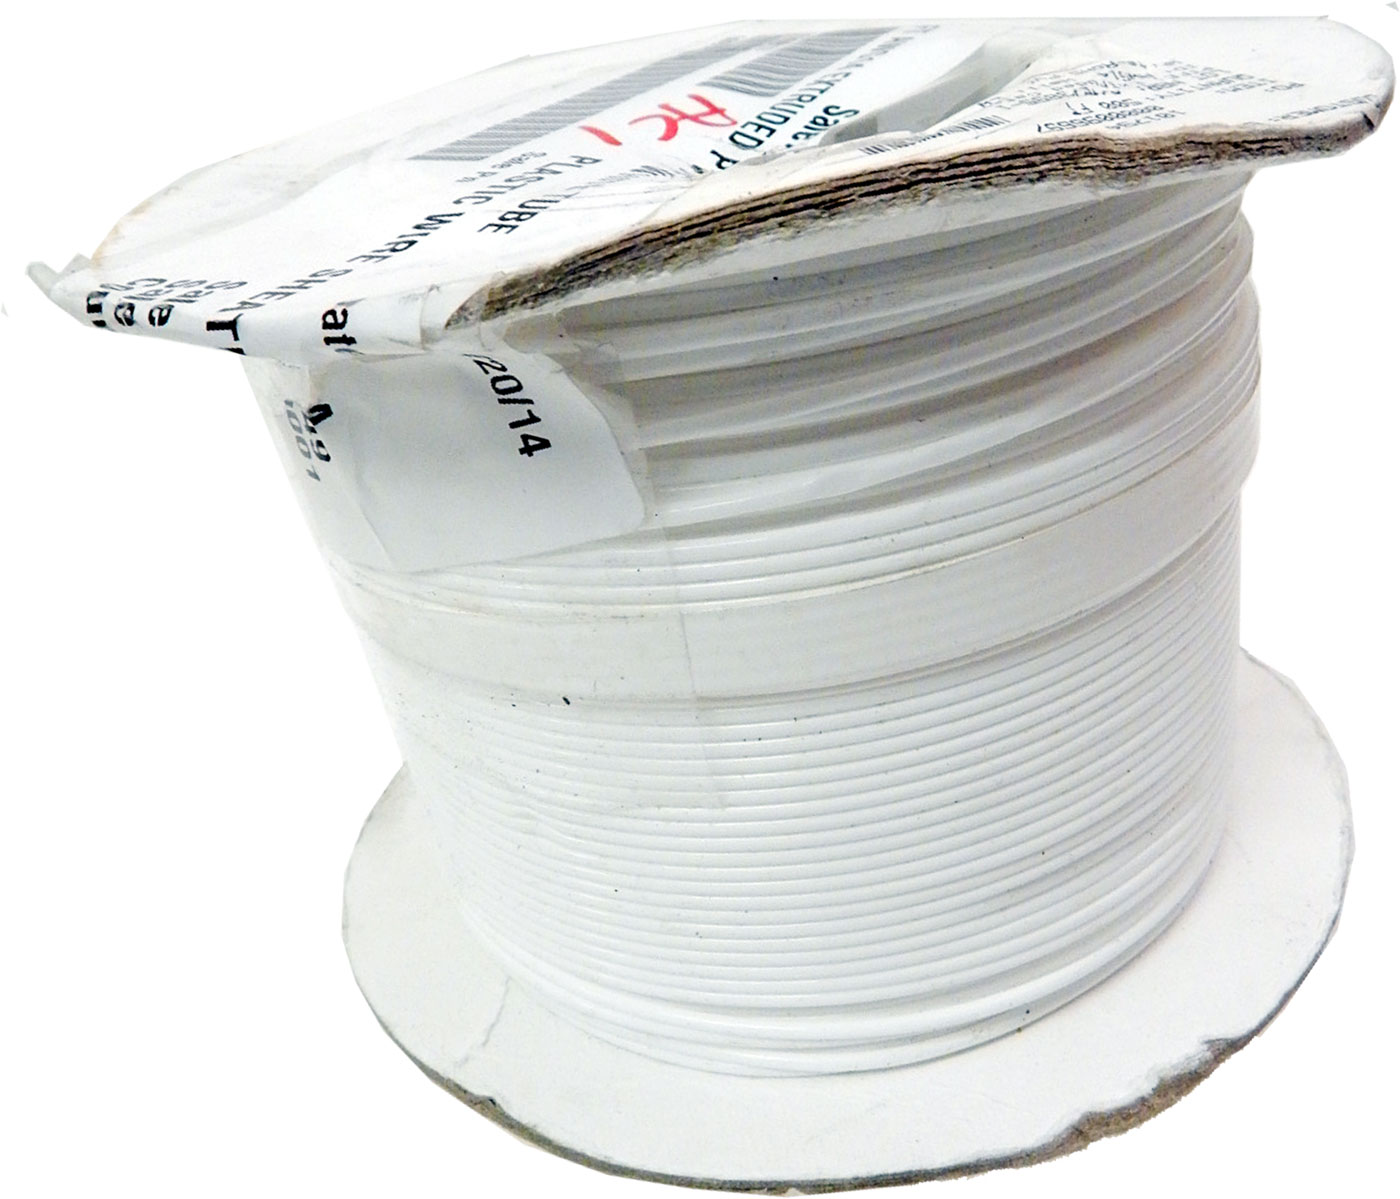 ZEUS 500Ft AWG14 PTFE White Tube PLASTIC-WIRE-SHEATH